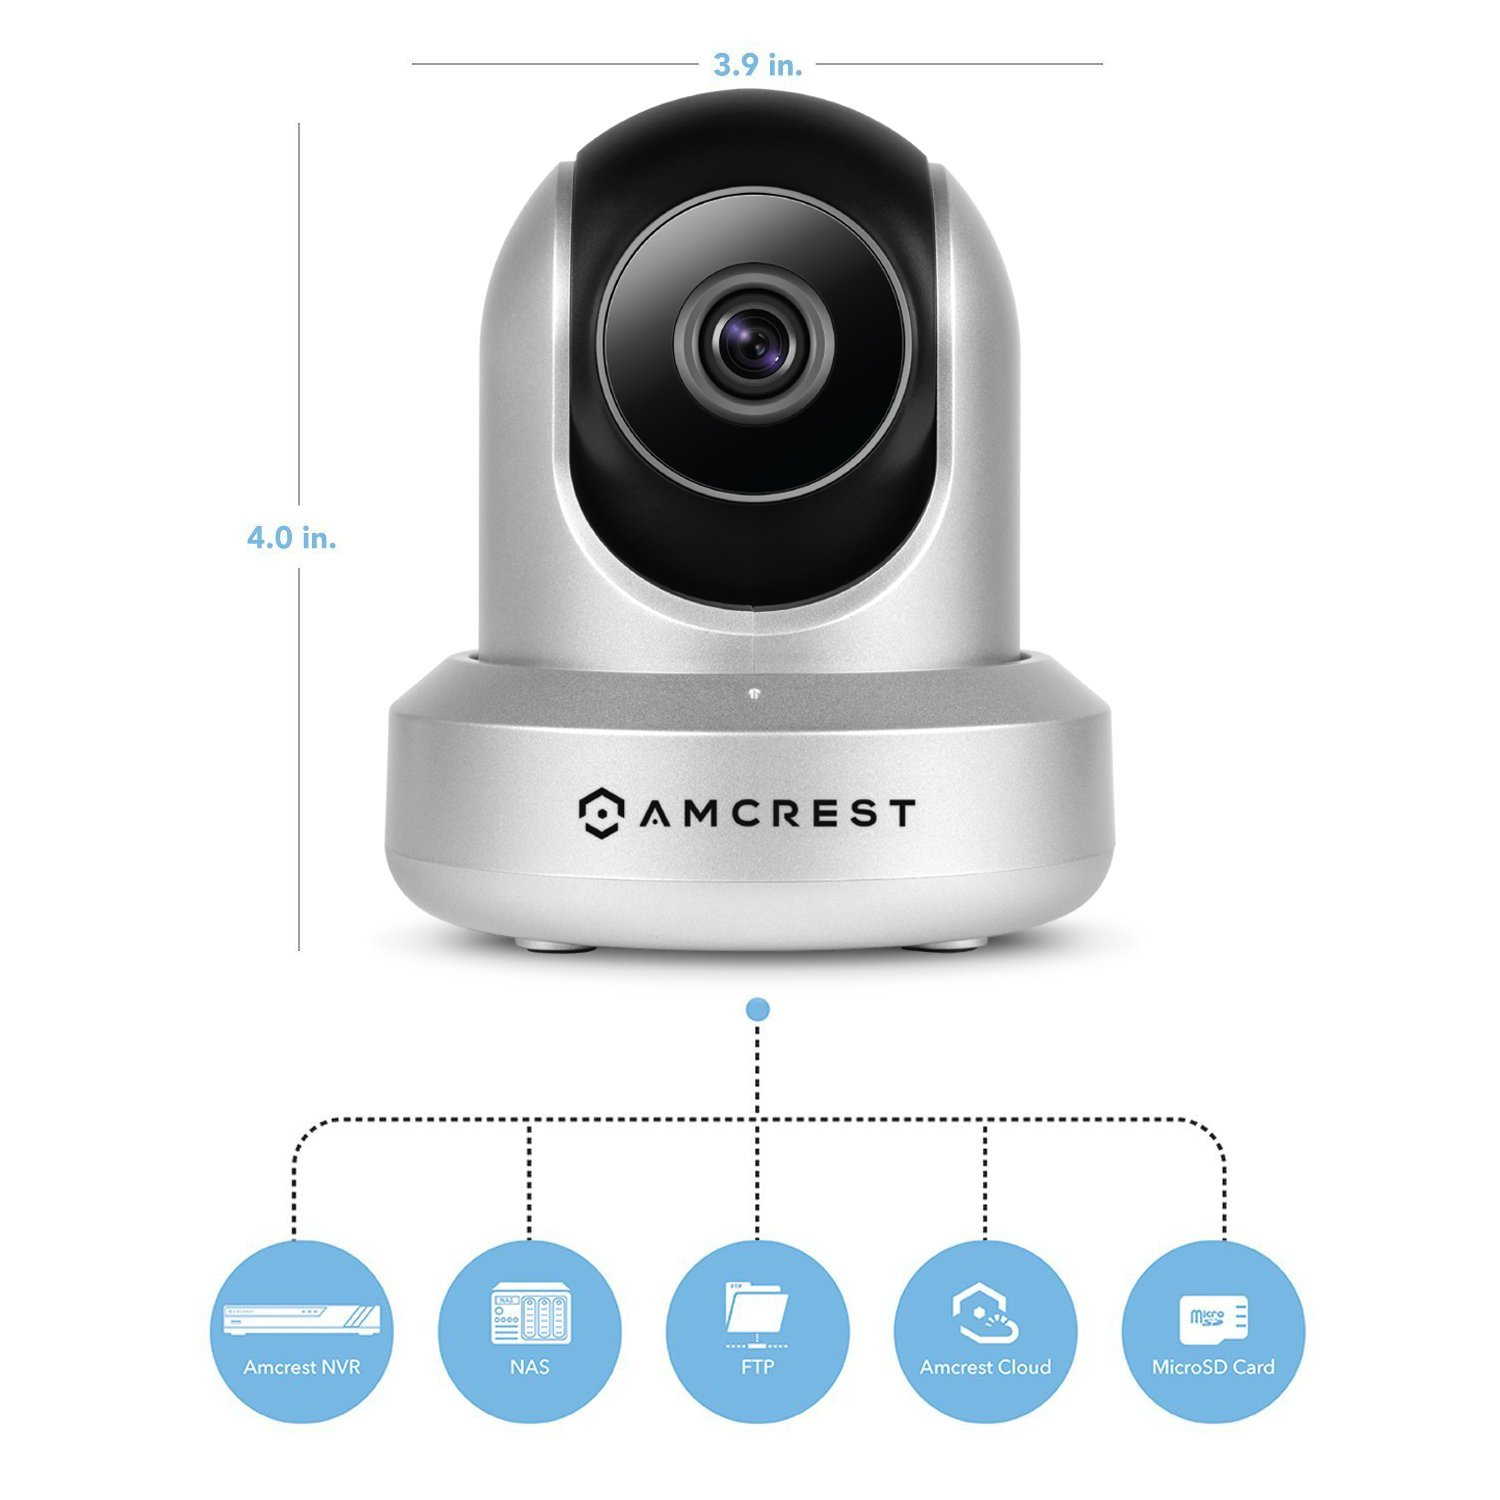 Amcrest UltraHD 2K WiFi Camera 3MP Security Wireless IP Camera with Pan/Tilt, Dual Band 5ghz/2.4ghz, Two-Way Audio, Wide 90° Viewing Angle and Night Vision IP3M-941S (Silver) by Amcrest (Image #3)